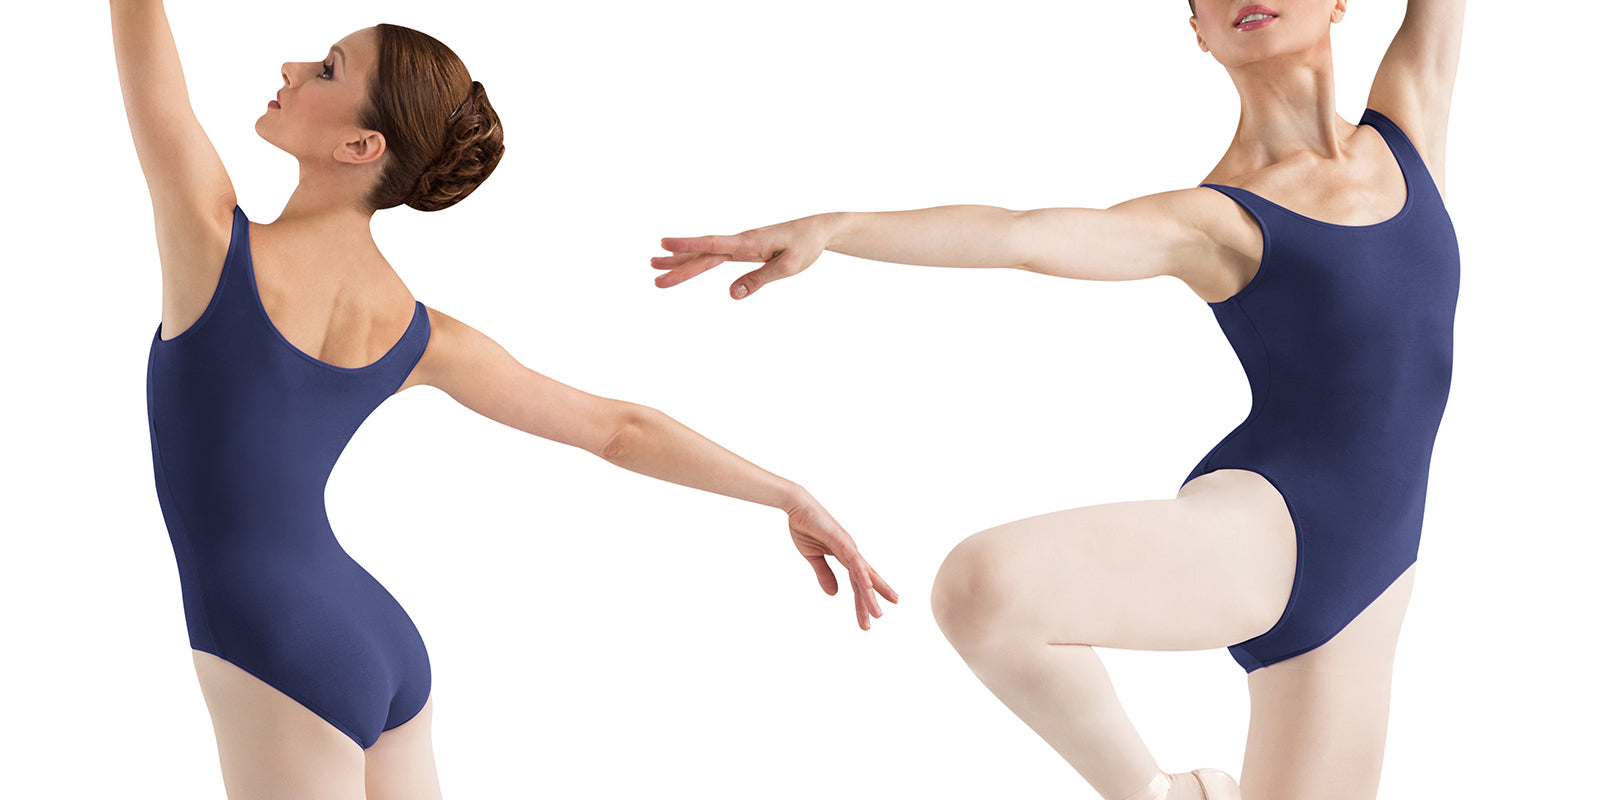 Ballet dancer Irina Dvorovenko dancing in BLOCH navy blue tank leotard